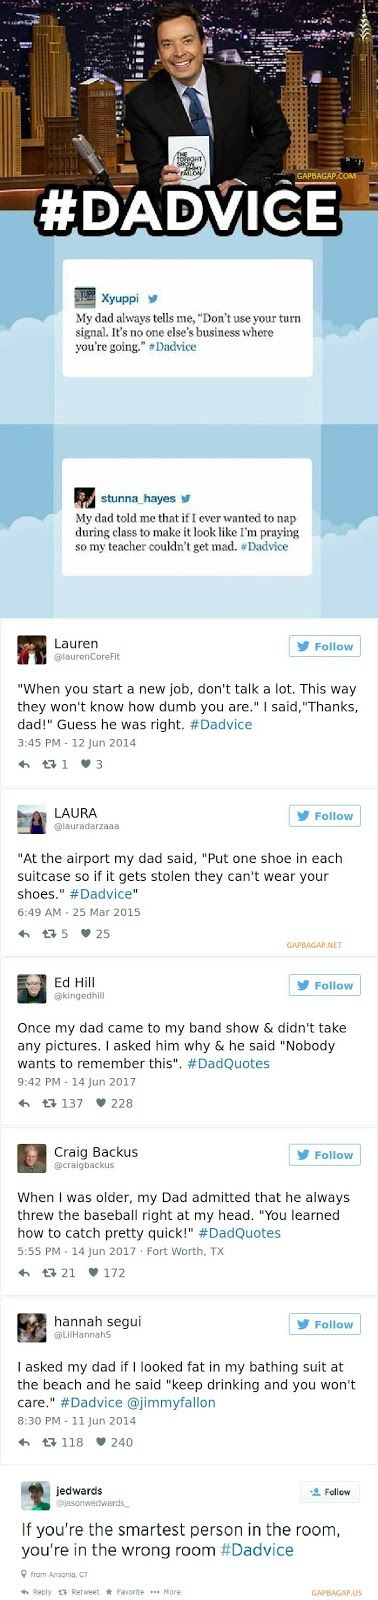 Top 8 Funniest Tweets About #Dadvice ft. Jimmy Fallon